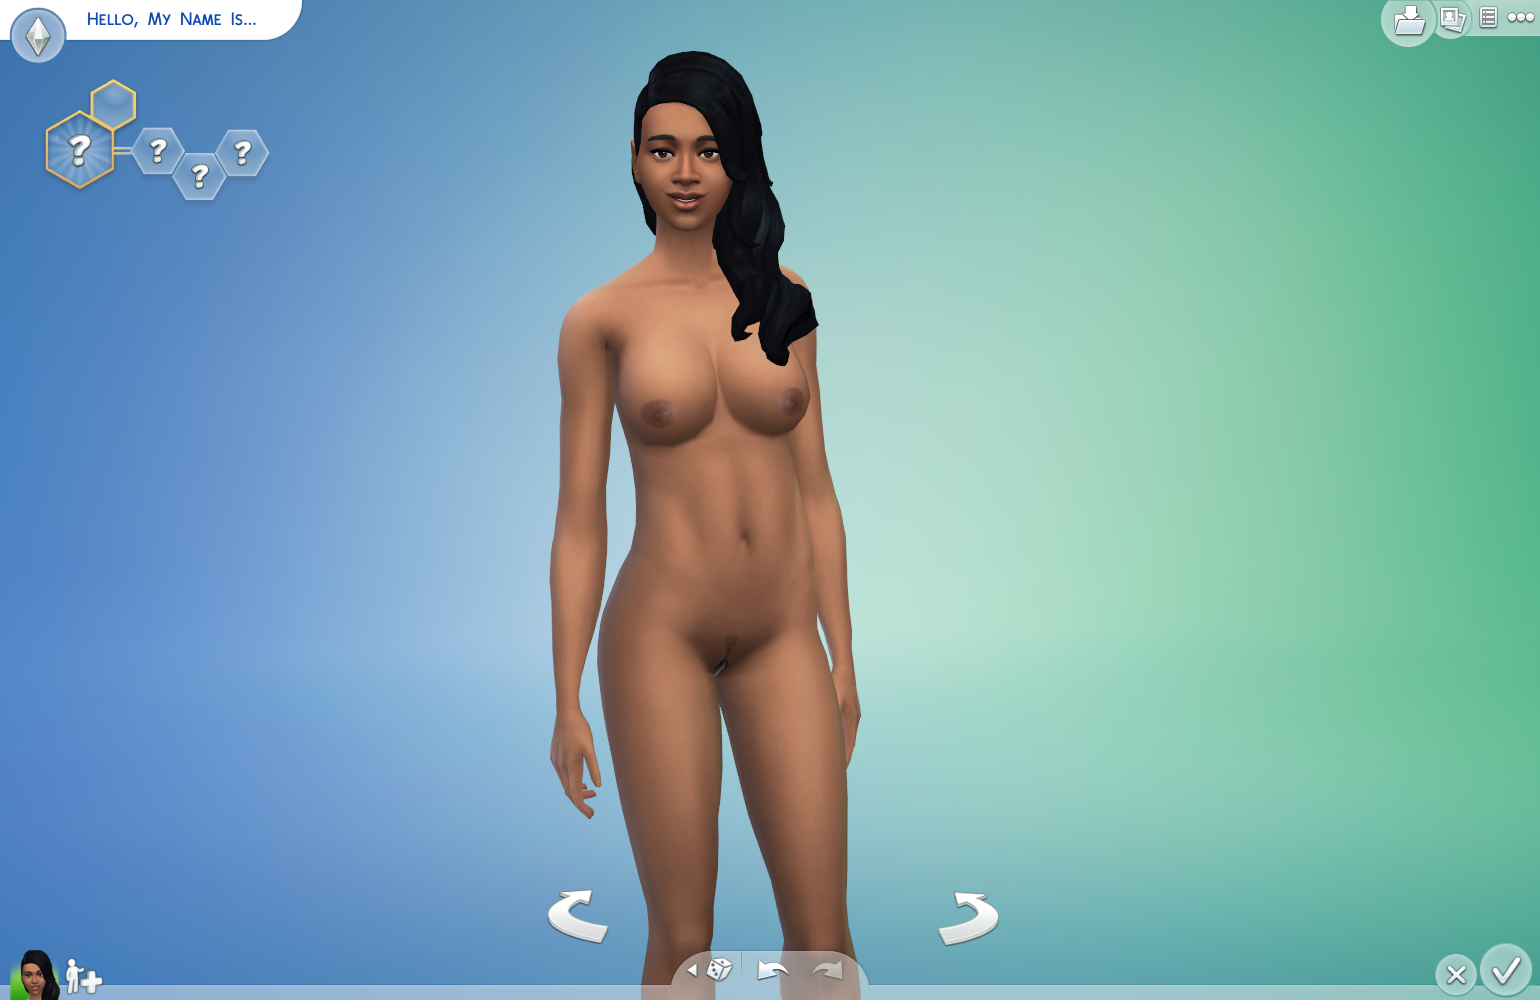 Sims 2 nude patches and cheats naked thumbs